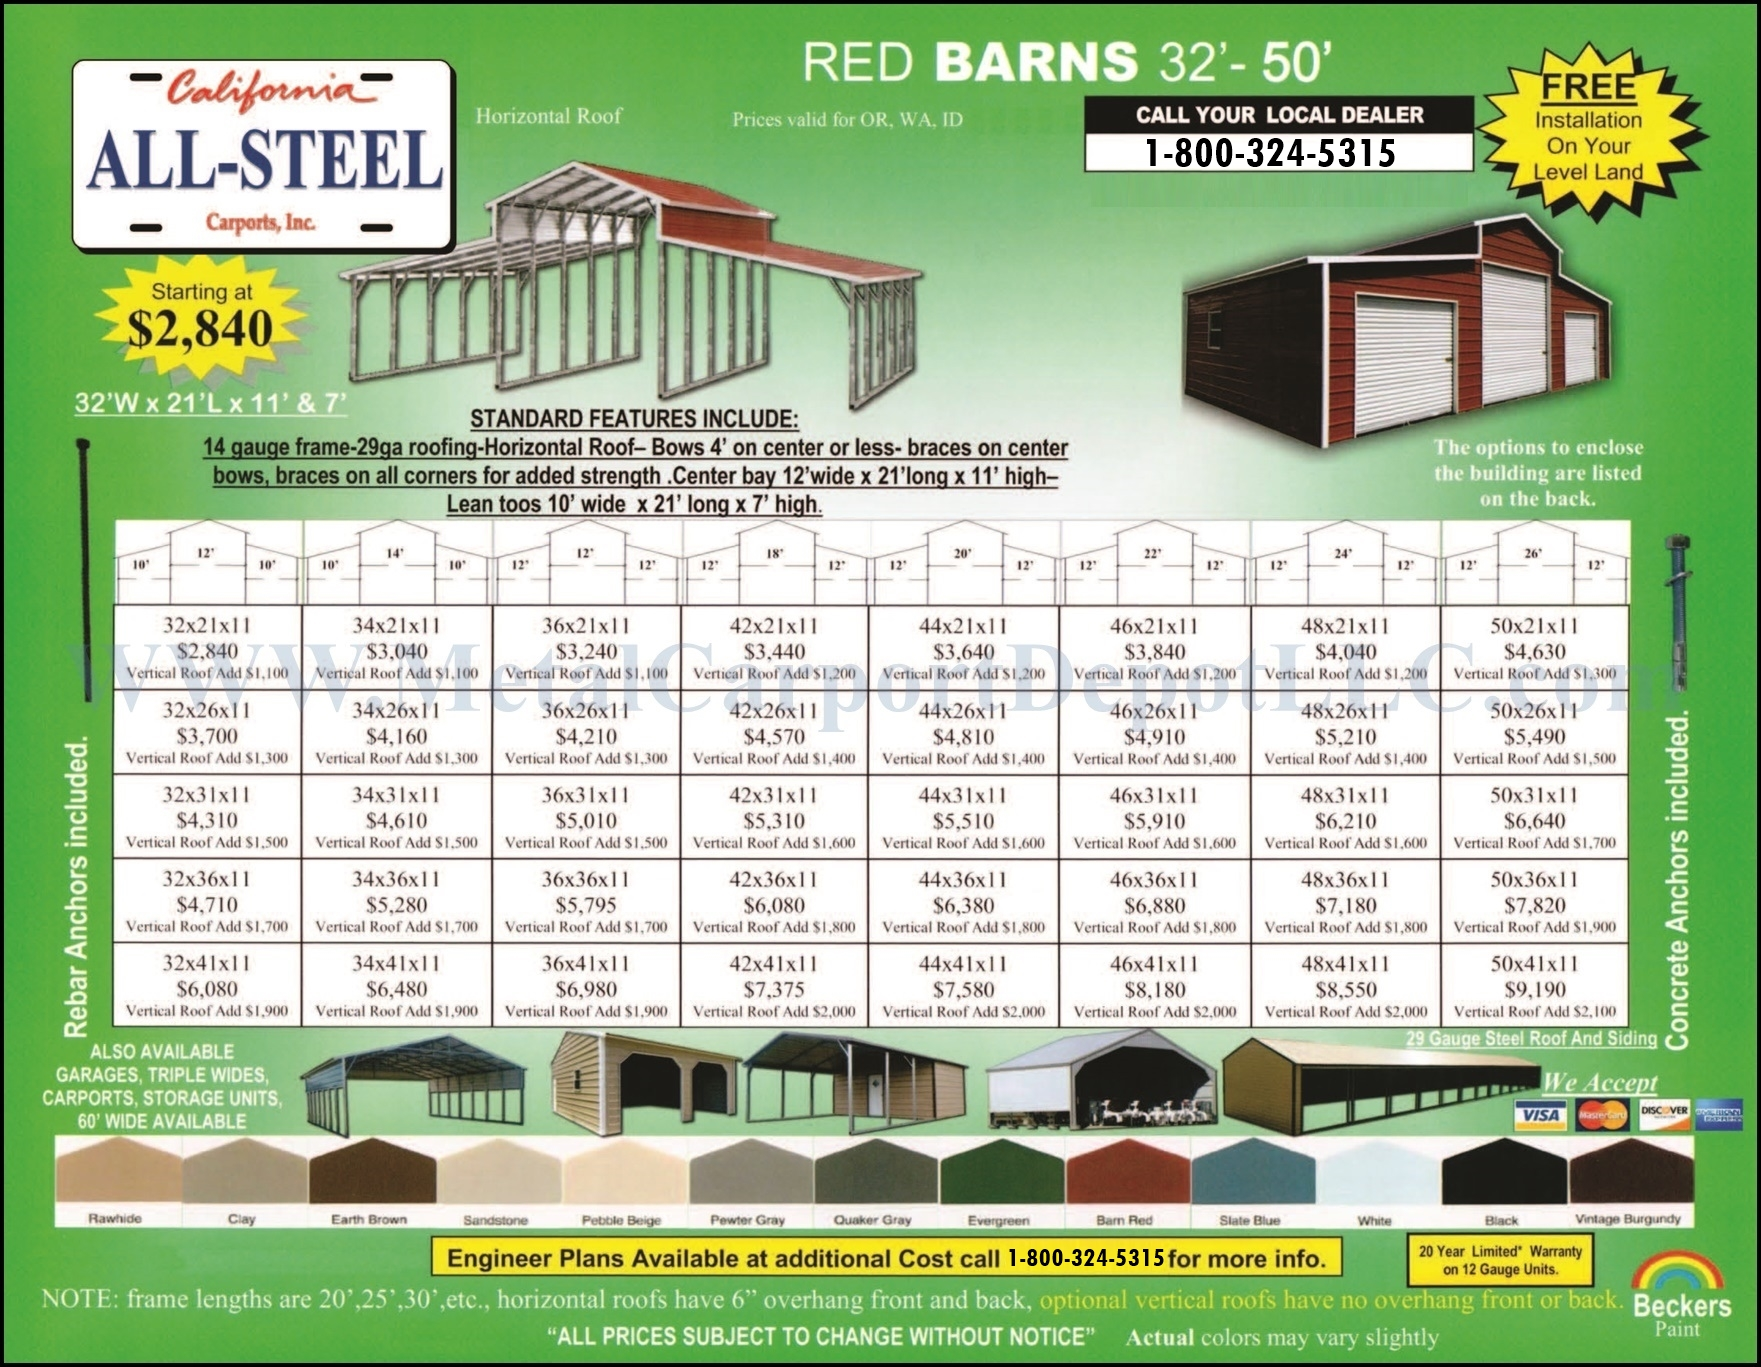 OR, WA, & ID Metal Red Barns Pricing